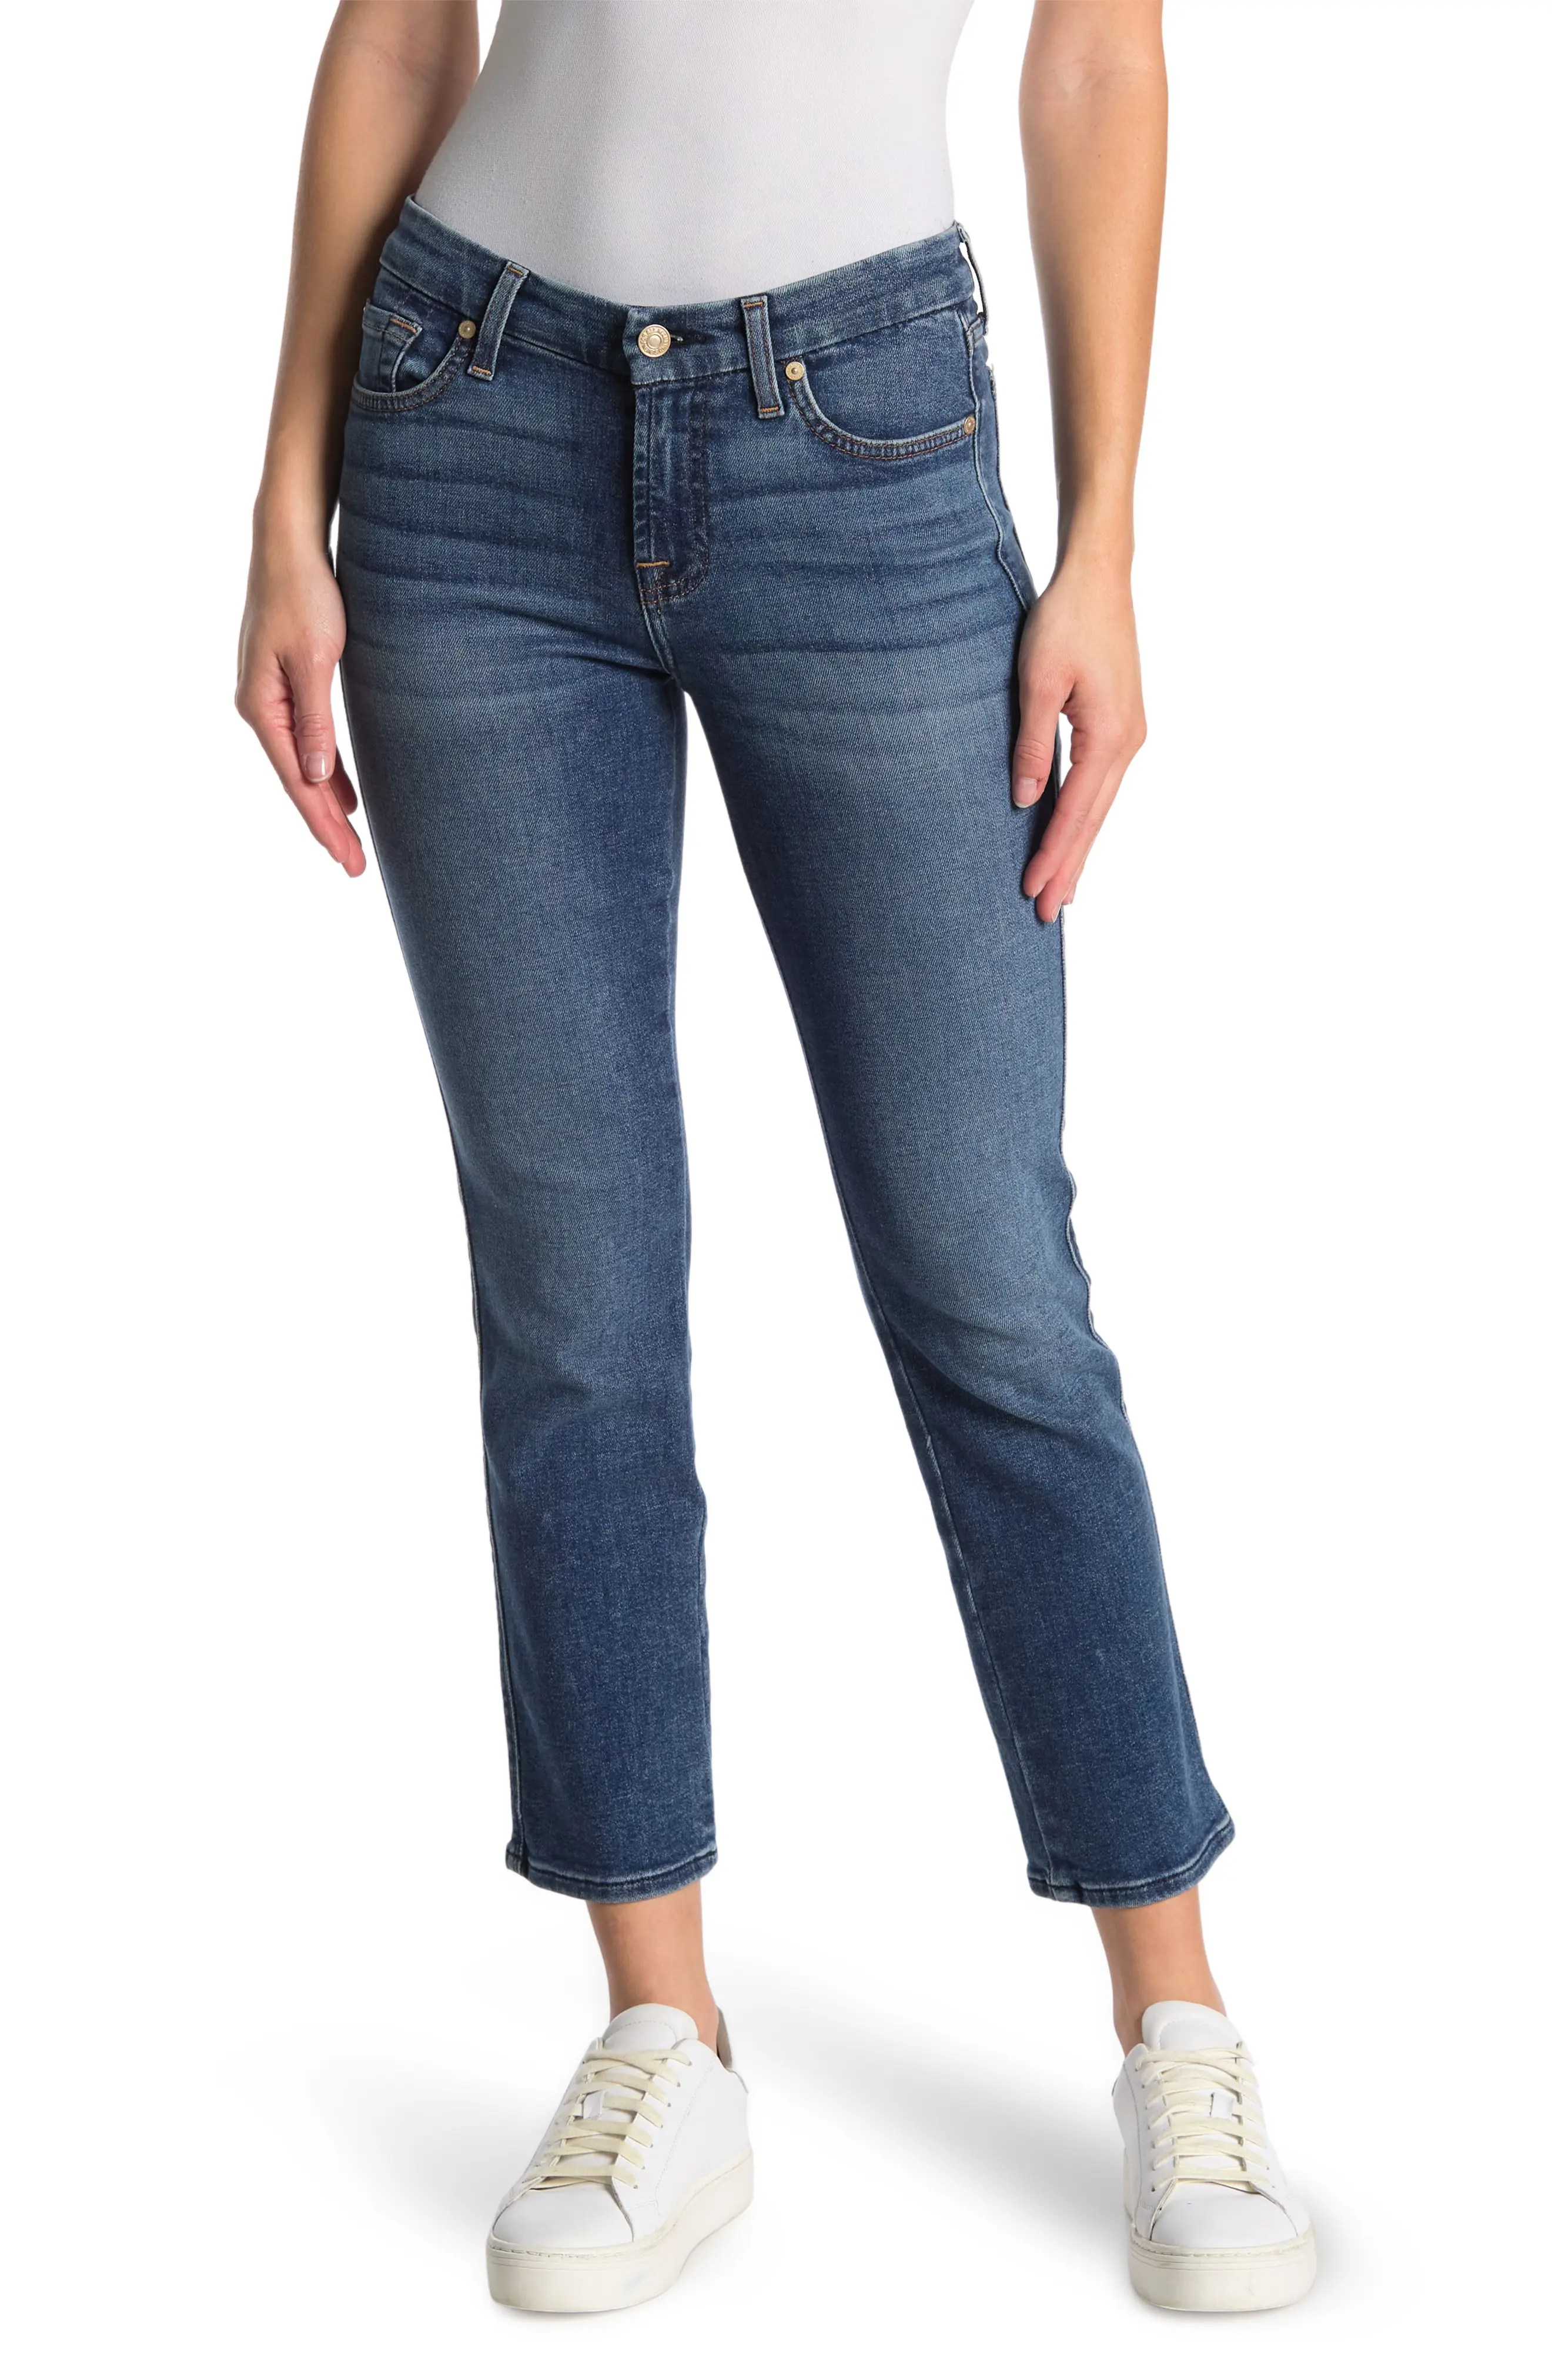 7 for all mankind kimmie mid rise ankle crop skinny jeans nordstrom rack